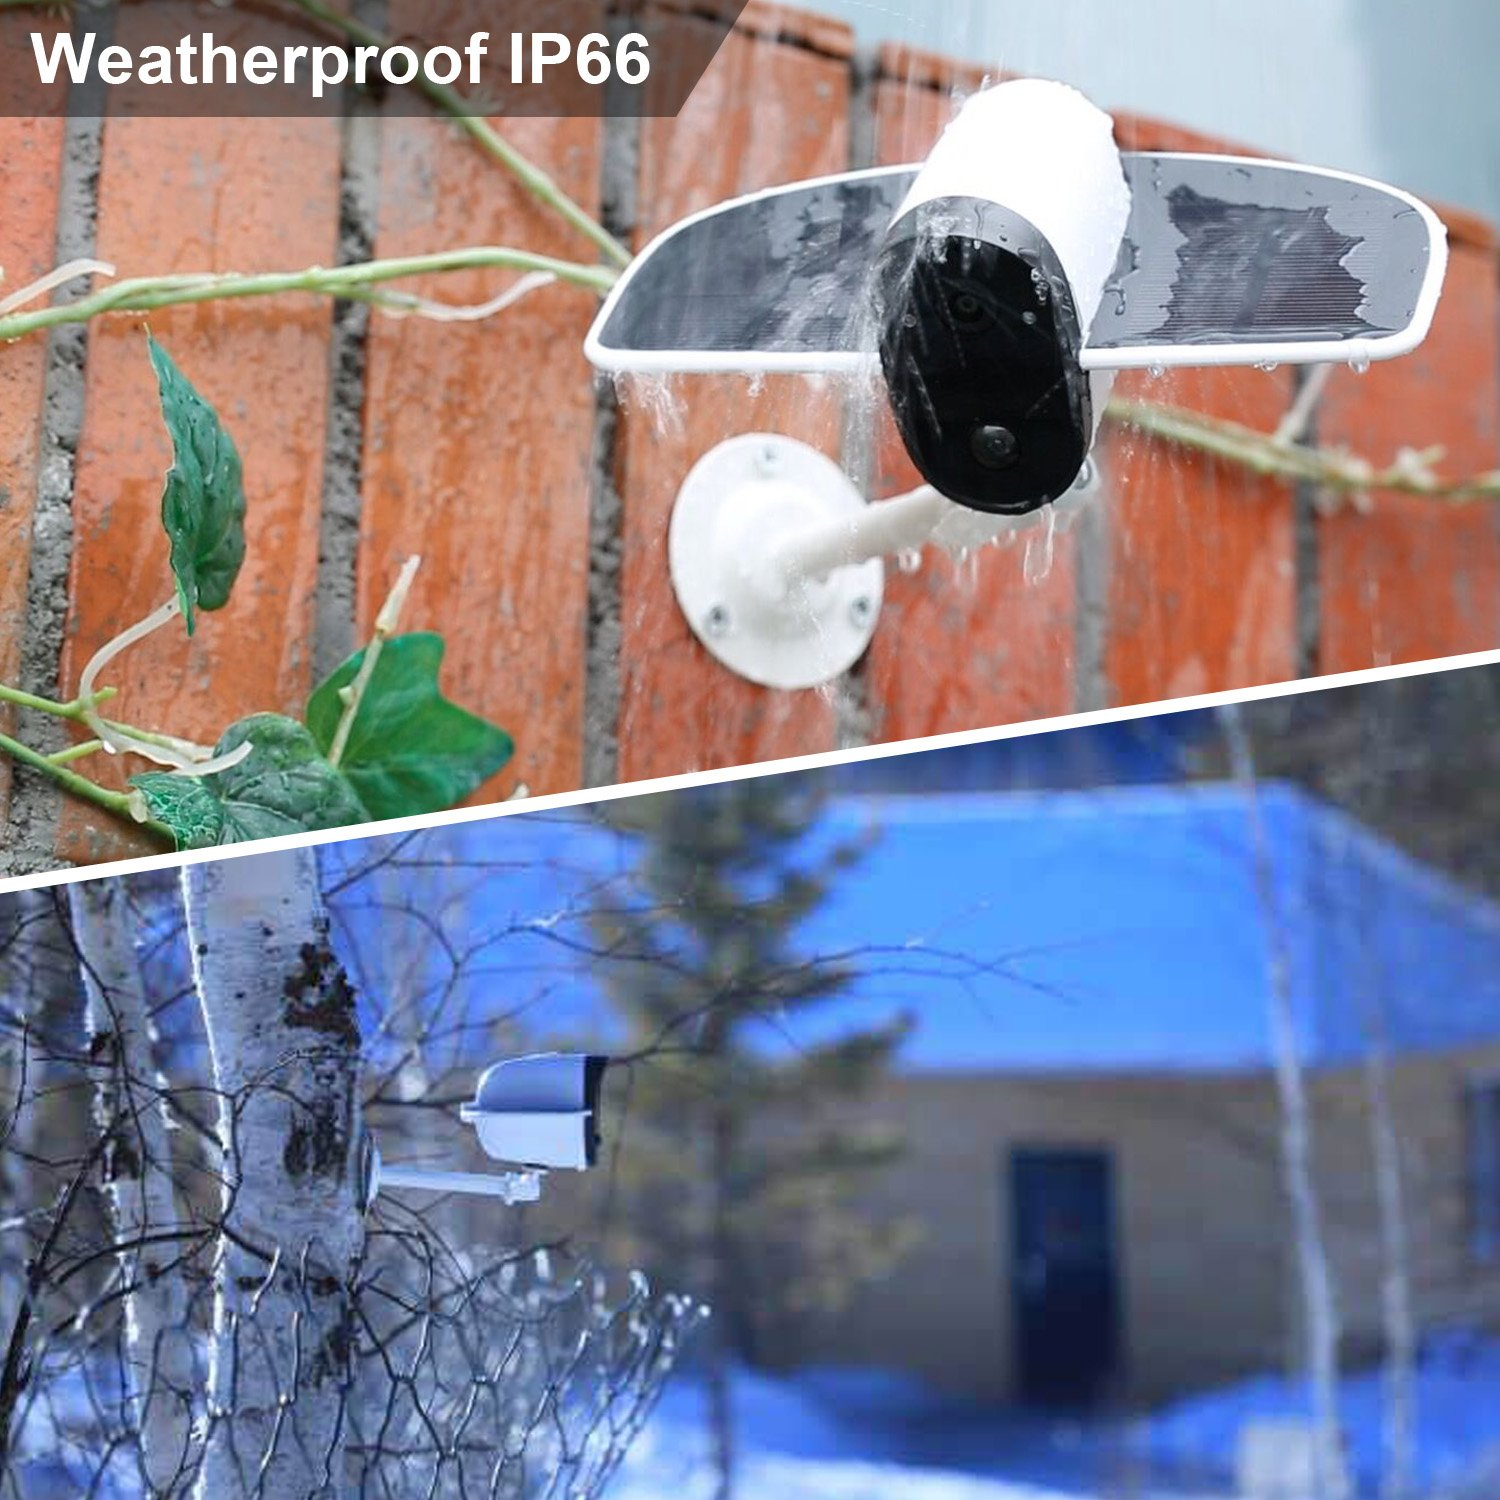 IP66 Weatherproof Security Camera